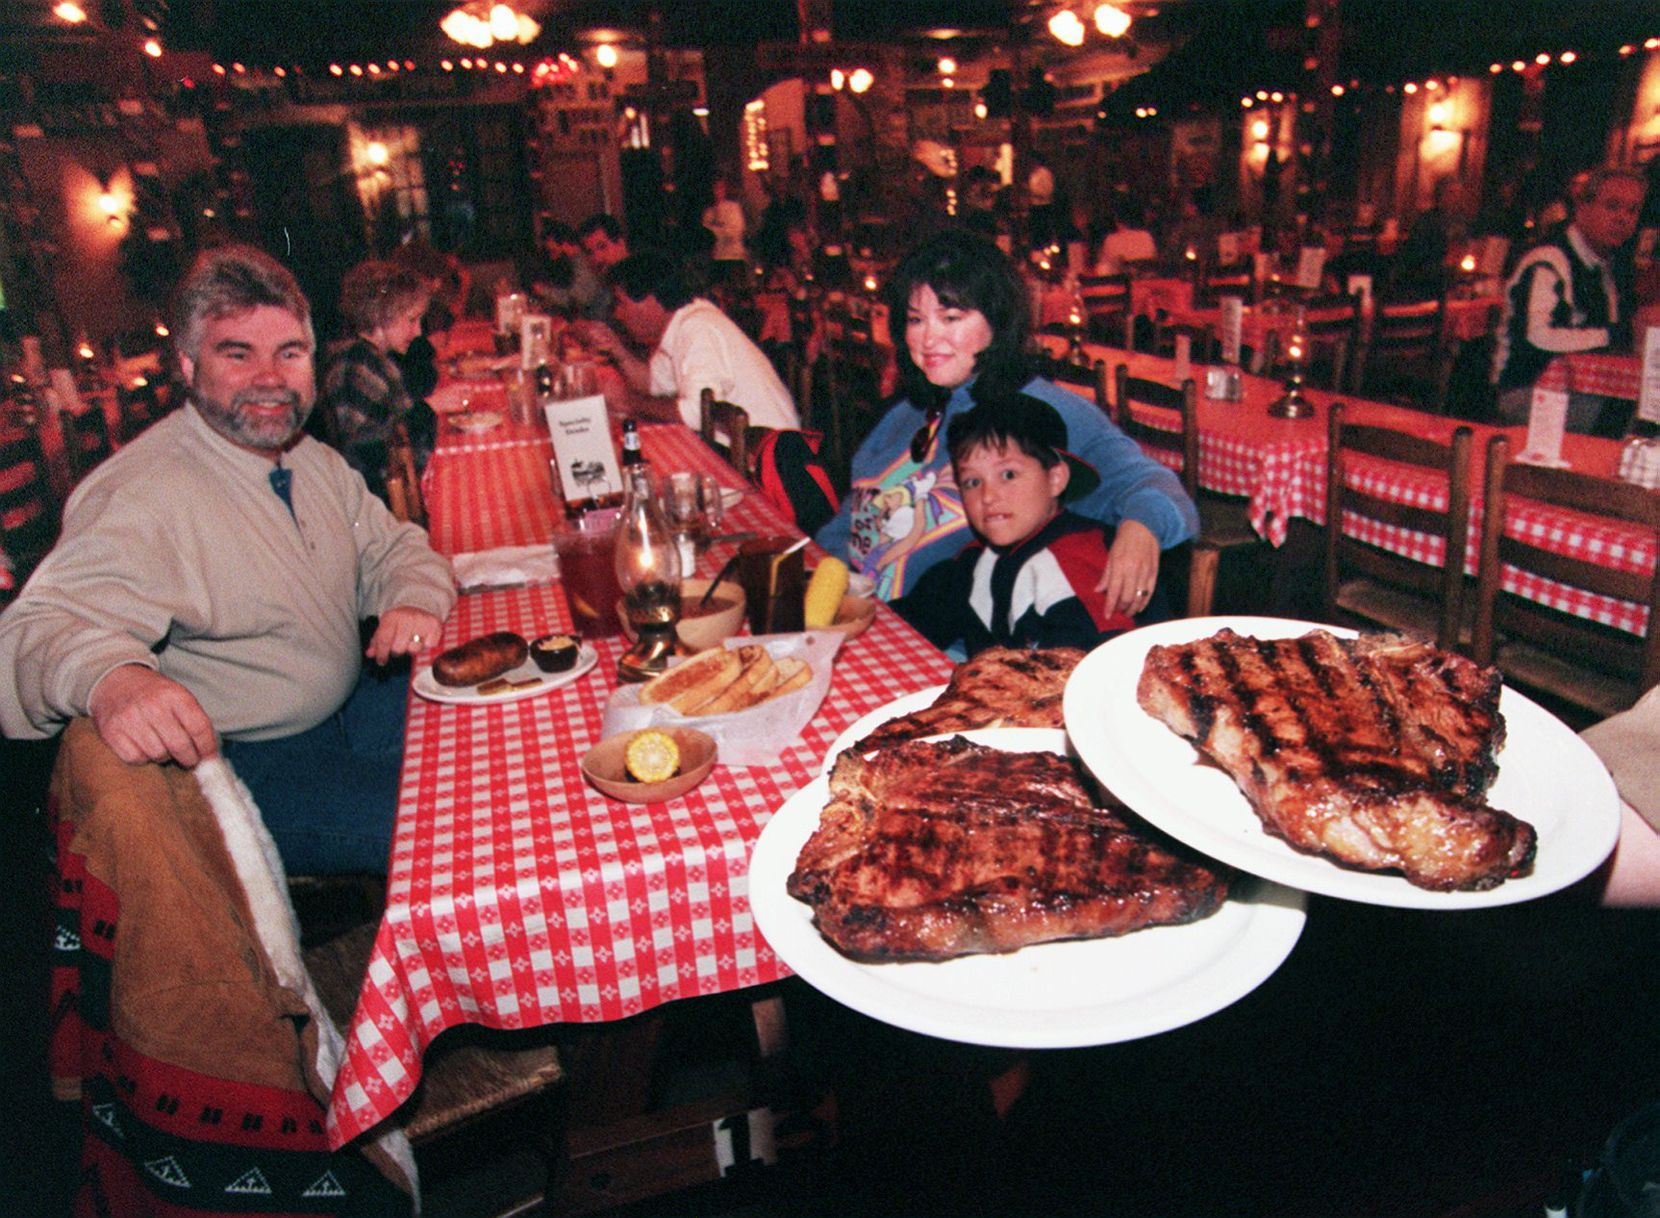 Tom, Irene and then-7-year-old Chase Massar were ready for their Cowboy steaks at Trail Dust Steak House in Mesquite in this 1997 file photo.